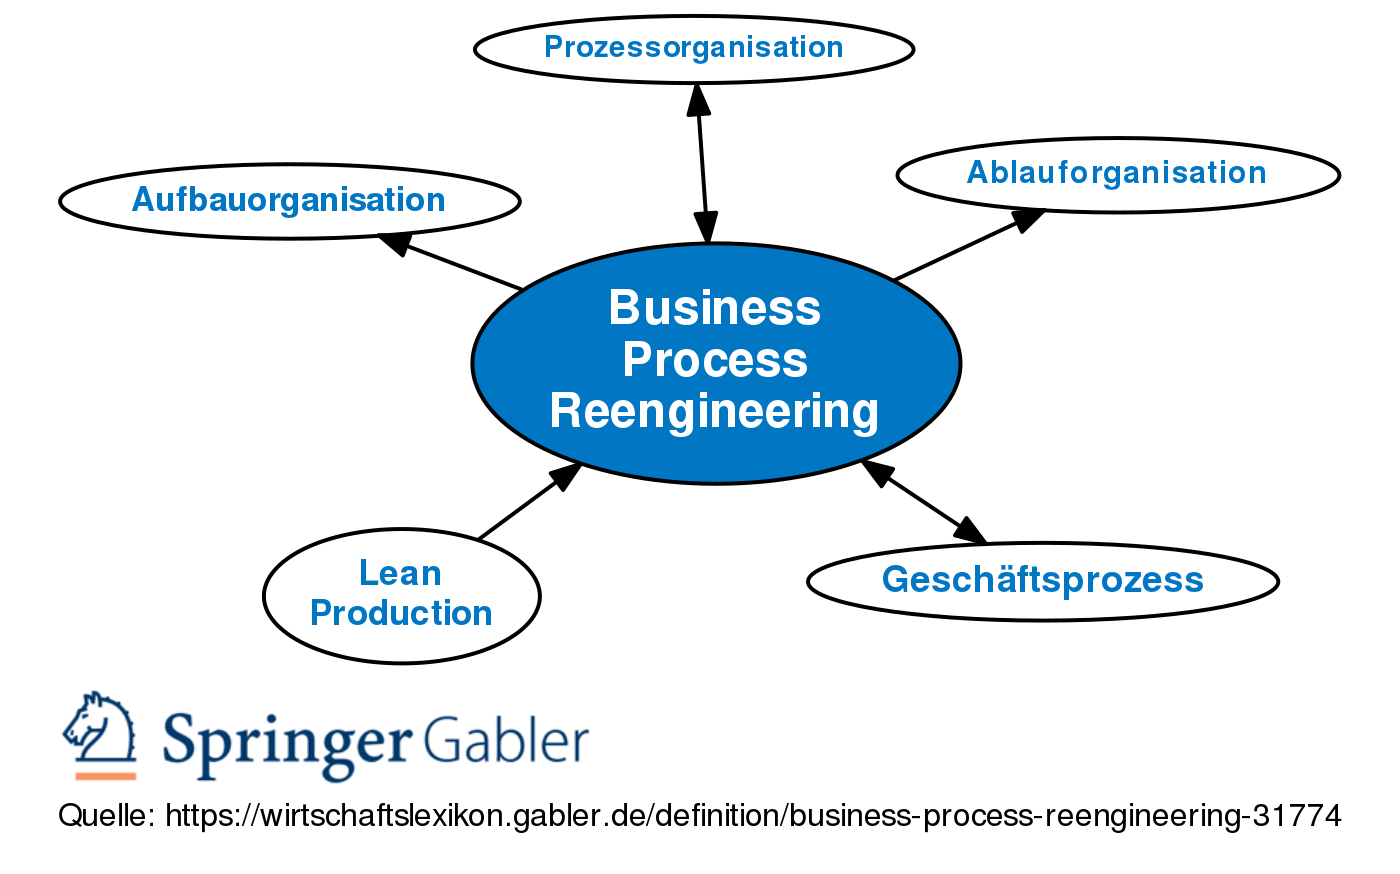 apple business process reengineering Understand the technical and functional perceptions regarding customization versus business process reengineering to satisfy functionality gaps keywords : erp, system dynamics, business process reengineering, enterprise resource planning,.